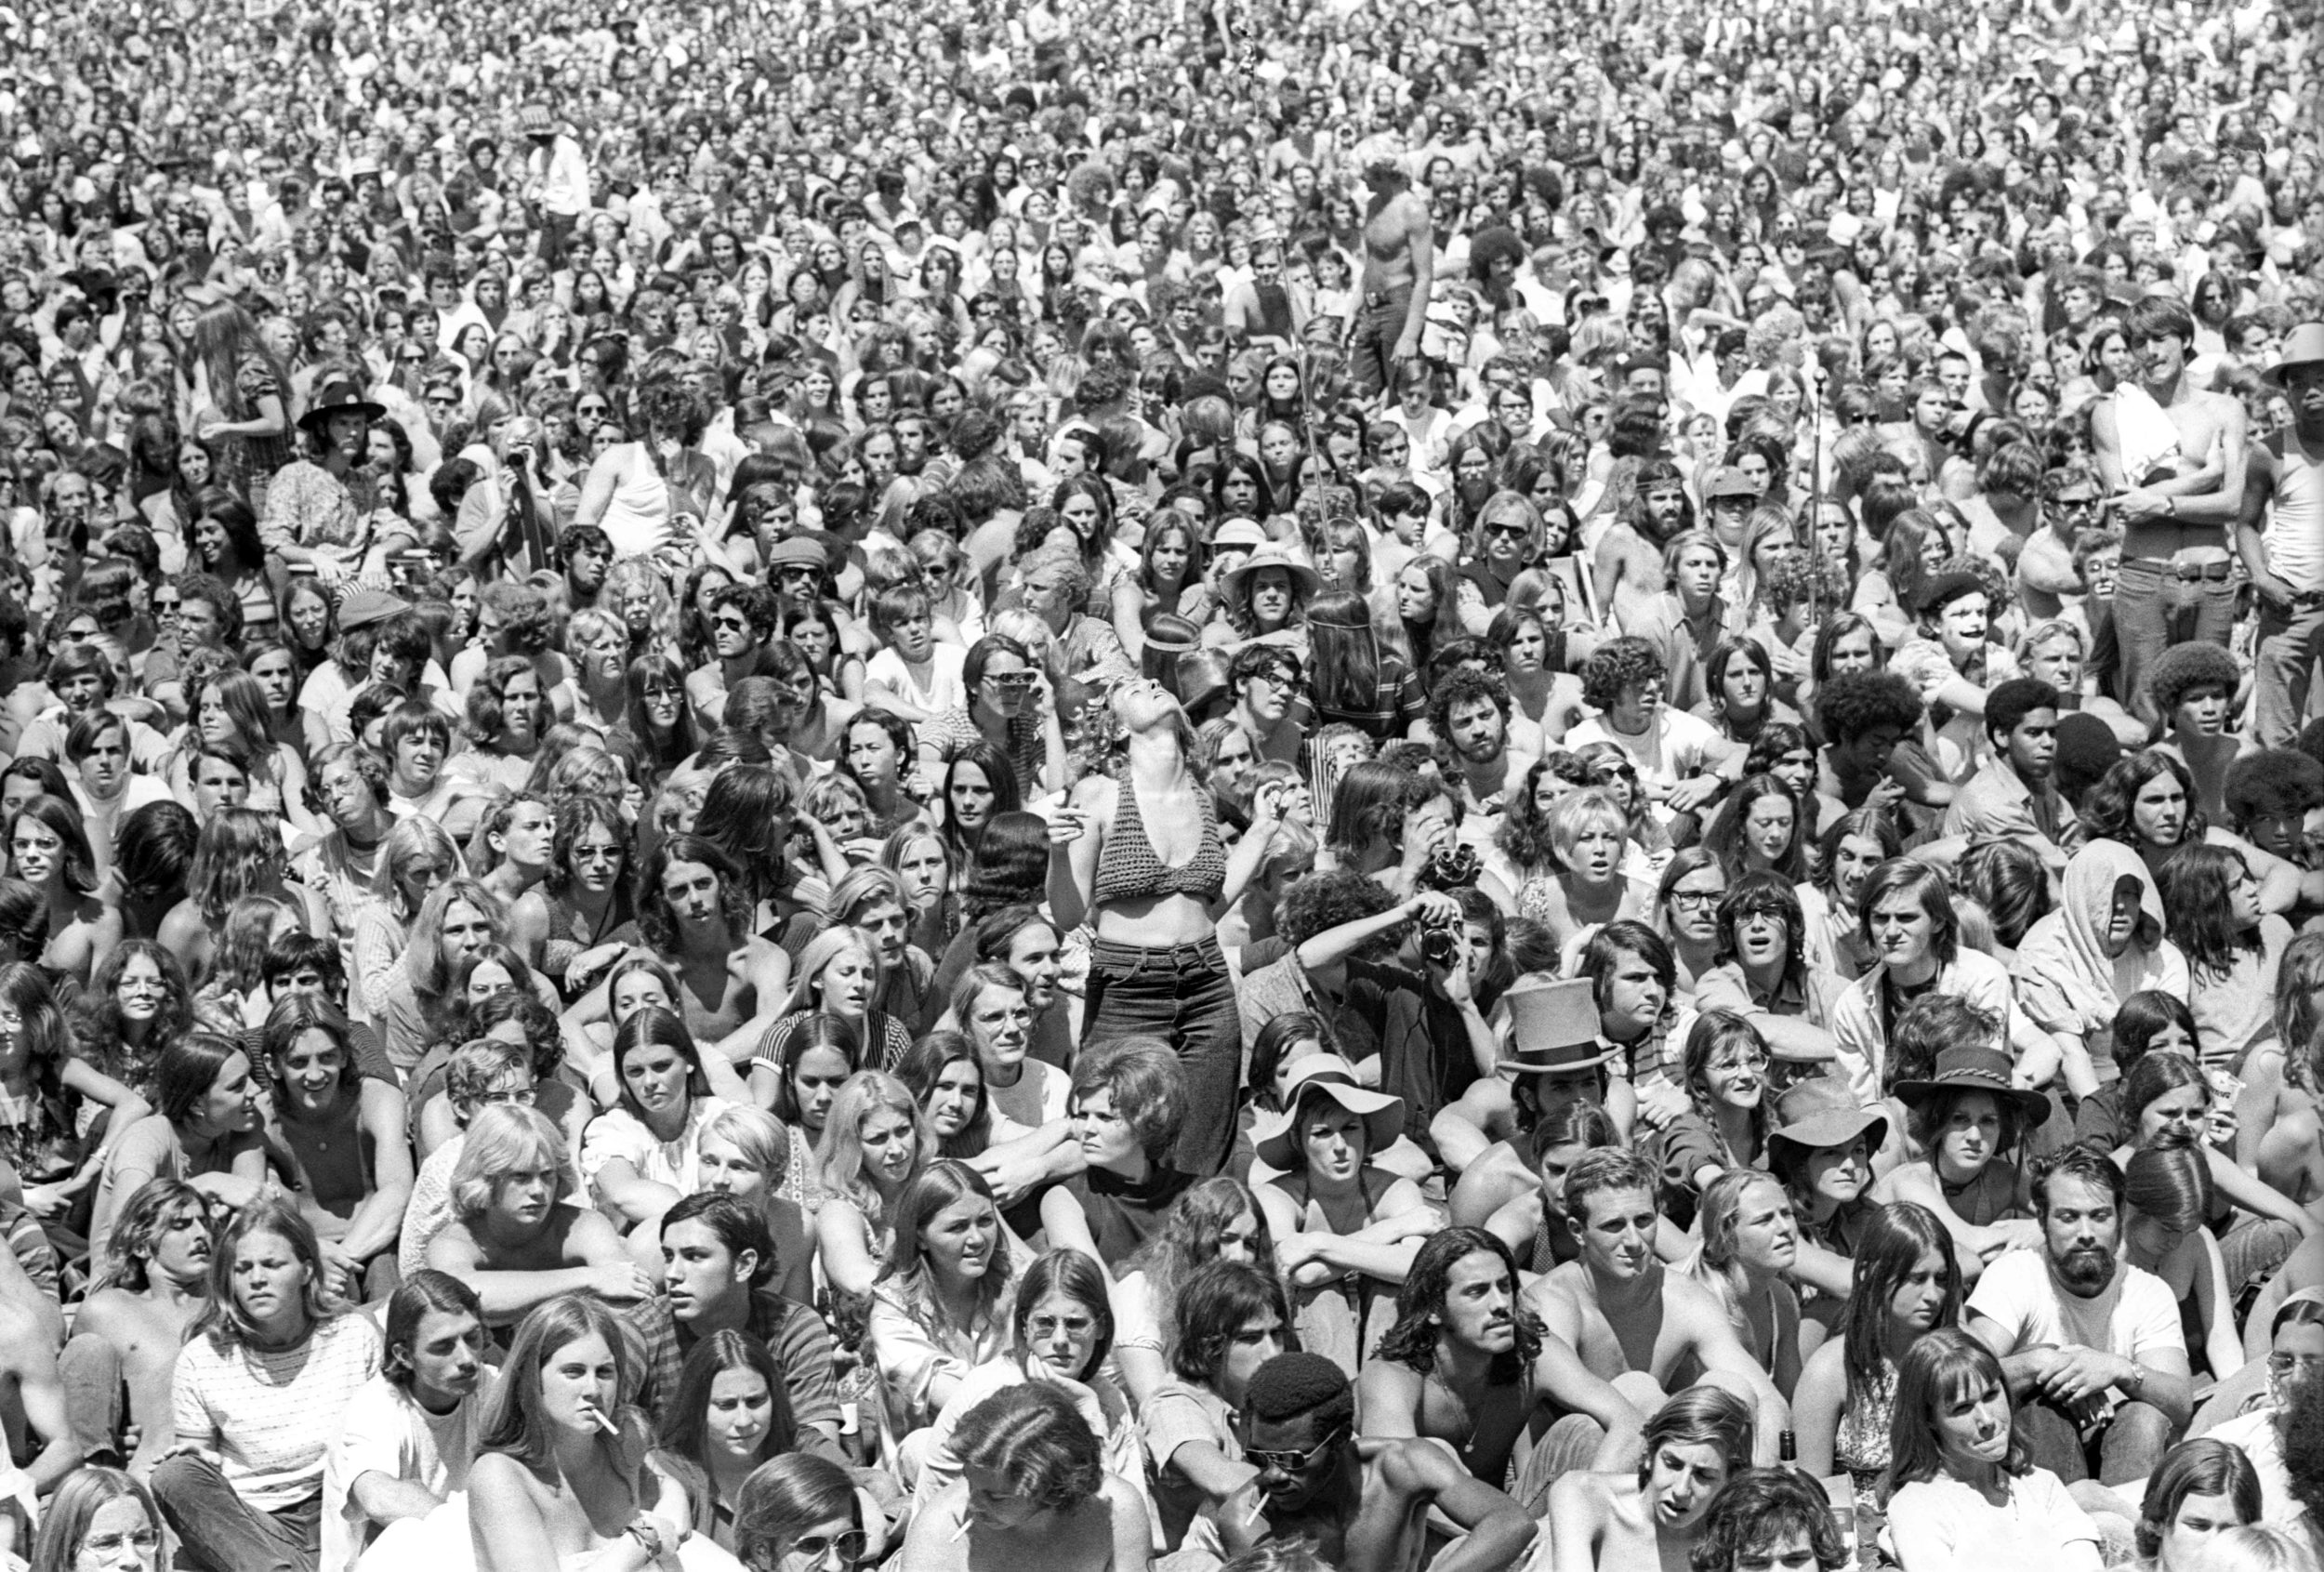 Audience (photo by Linda Wolf, 1970) at the Leon Russell/The Who Concert - Anaheim Stadium, Los Angeles, CA. (All Rights Reserved)